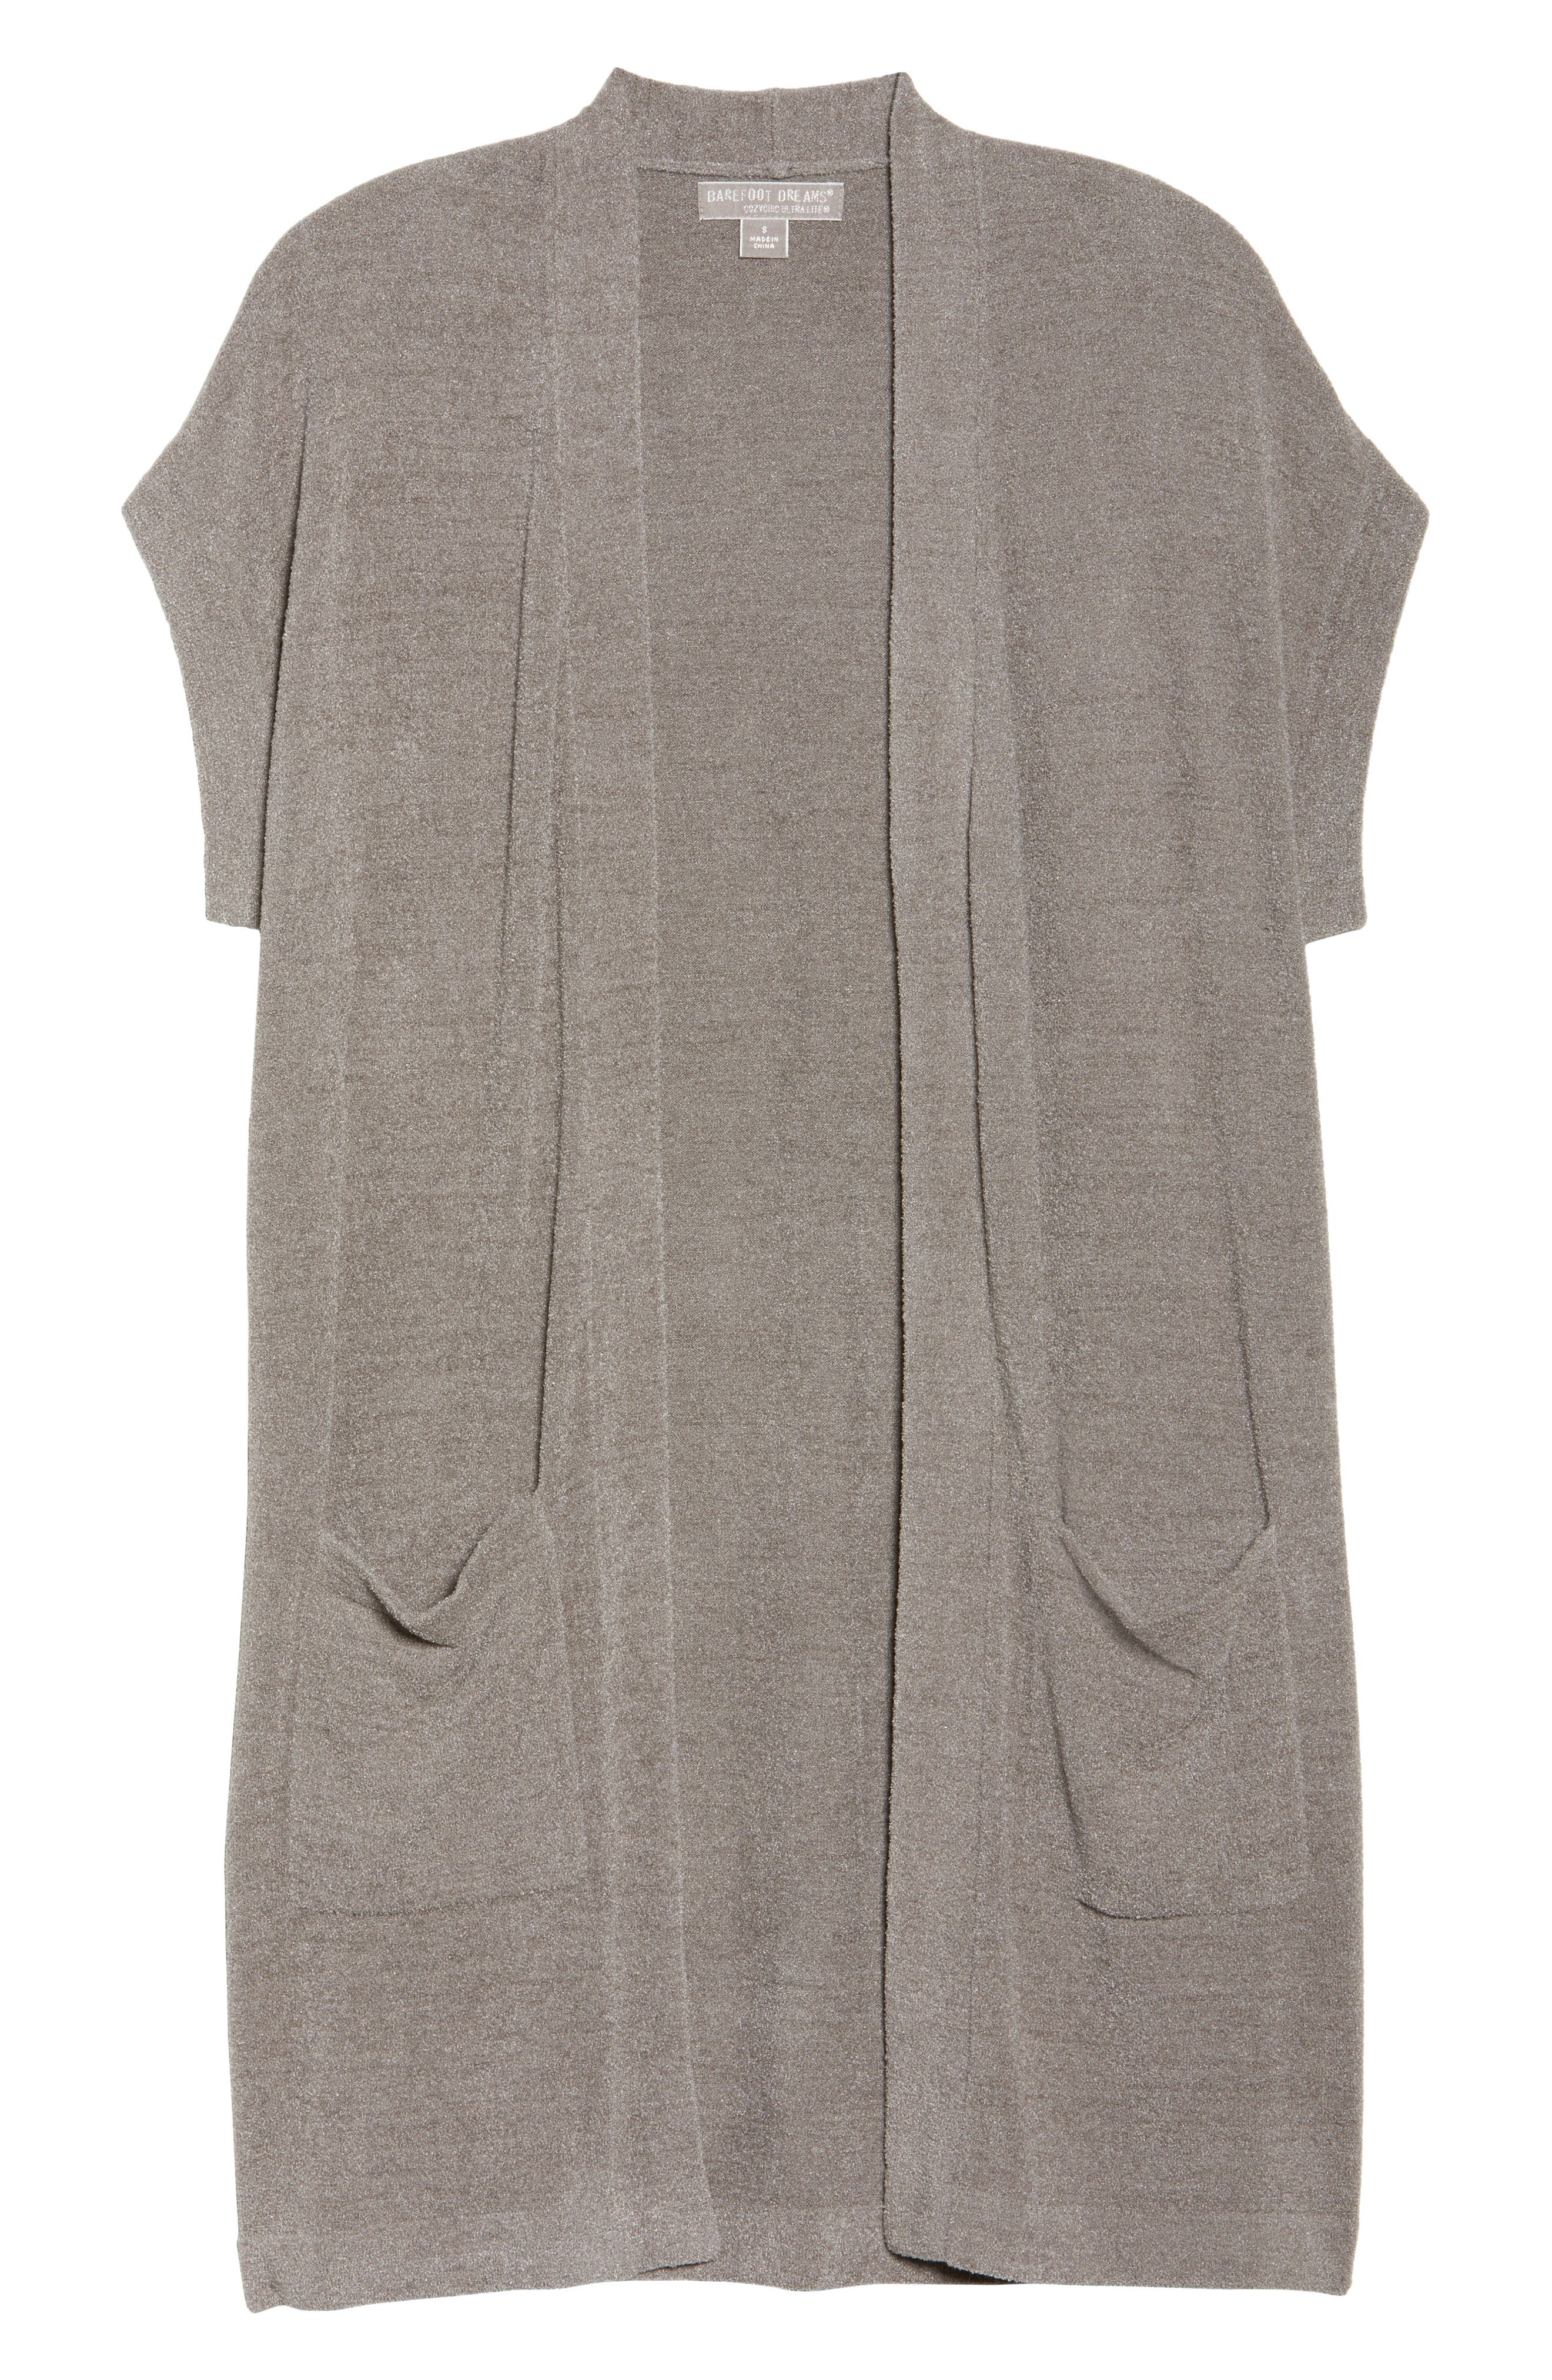 BAREFOOT DREAMS<SUP>®</SUP>, Cozychic Ultra Lite<sup>®</sup> Lounge Cardigan, Alternate thumbnail 6, color, BEACH ROCK